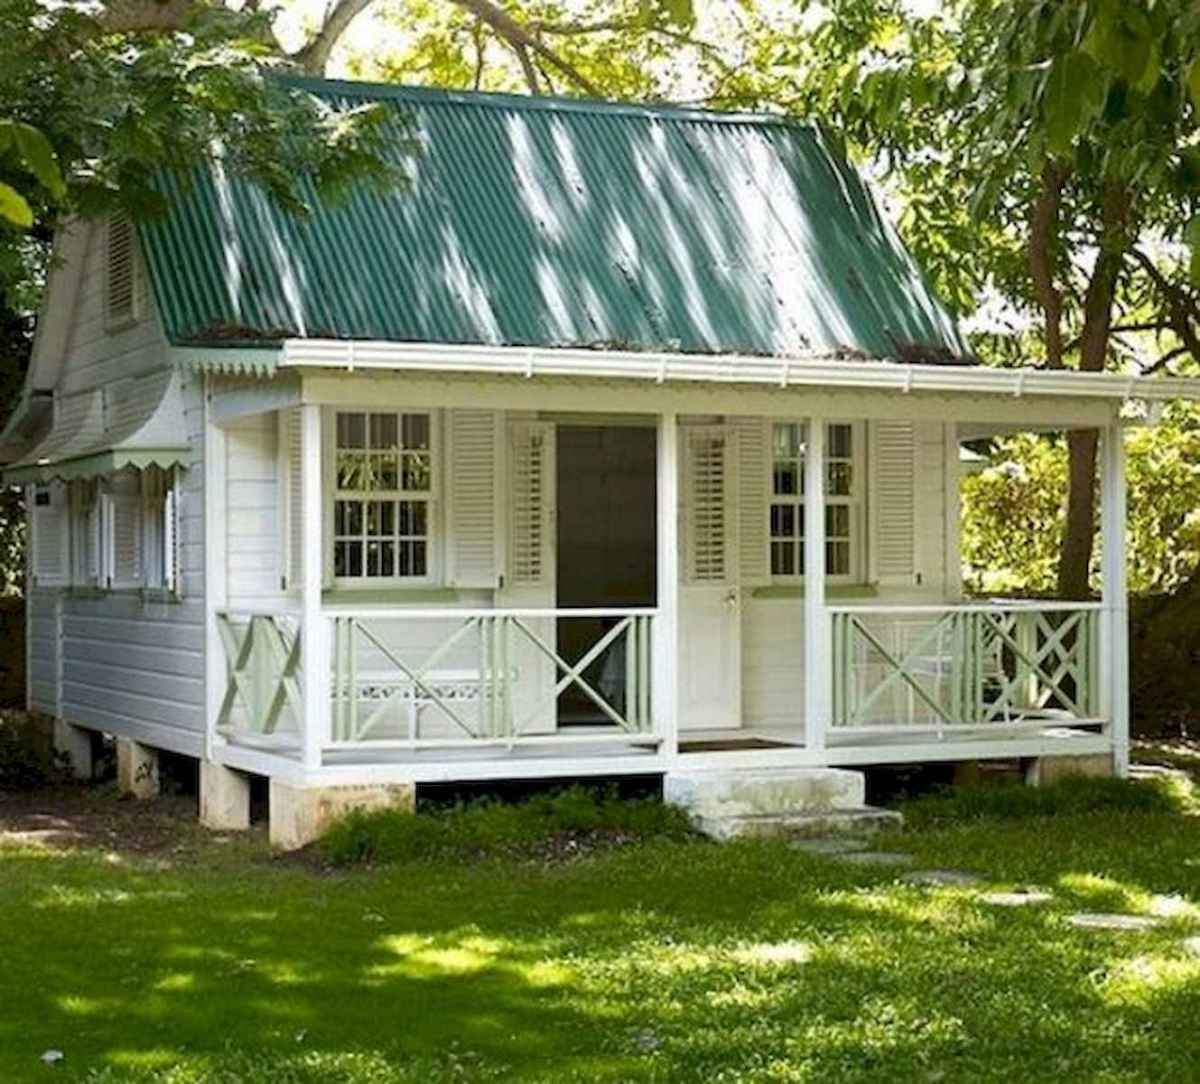 60 Beautiful Tiny House Plans Small Cottages Design Ideas (44)